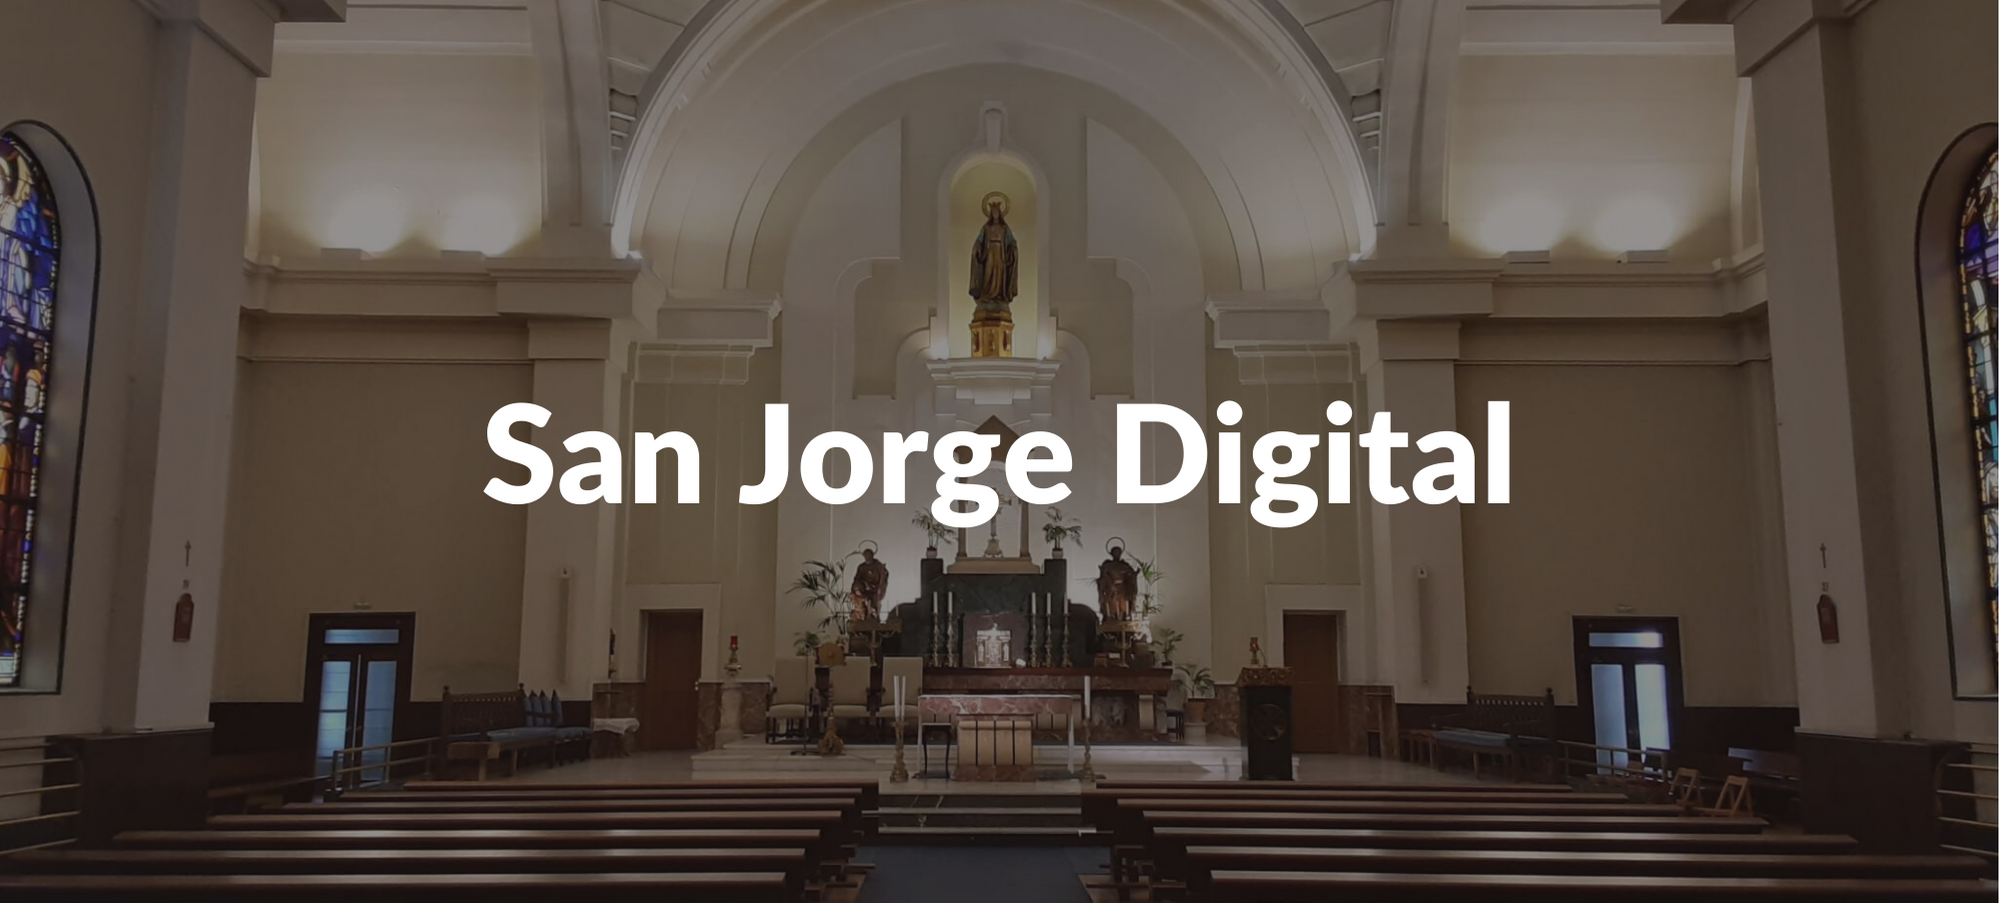 San Jorge Digital